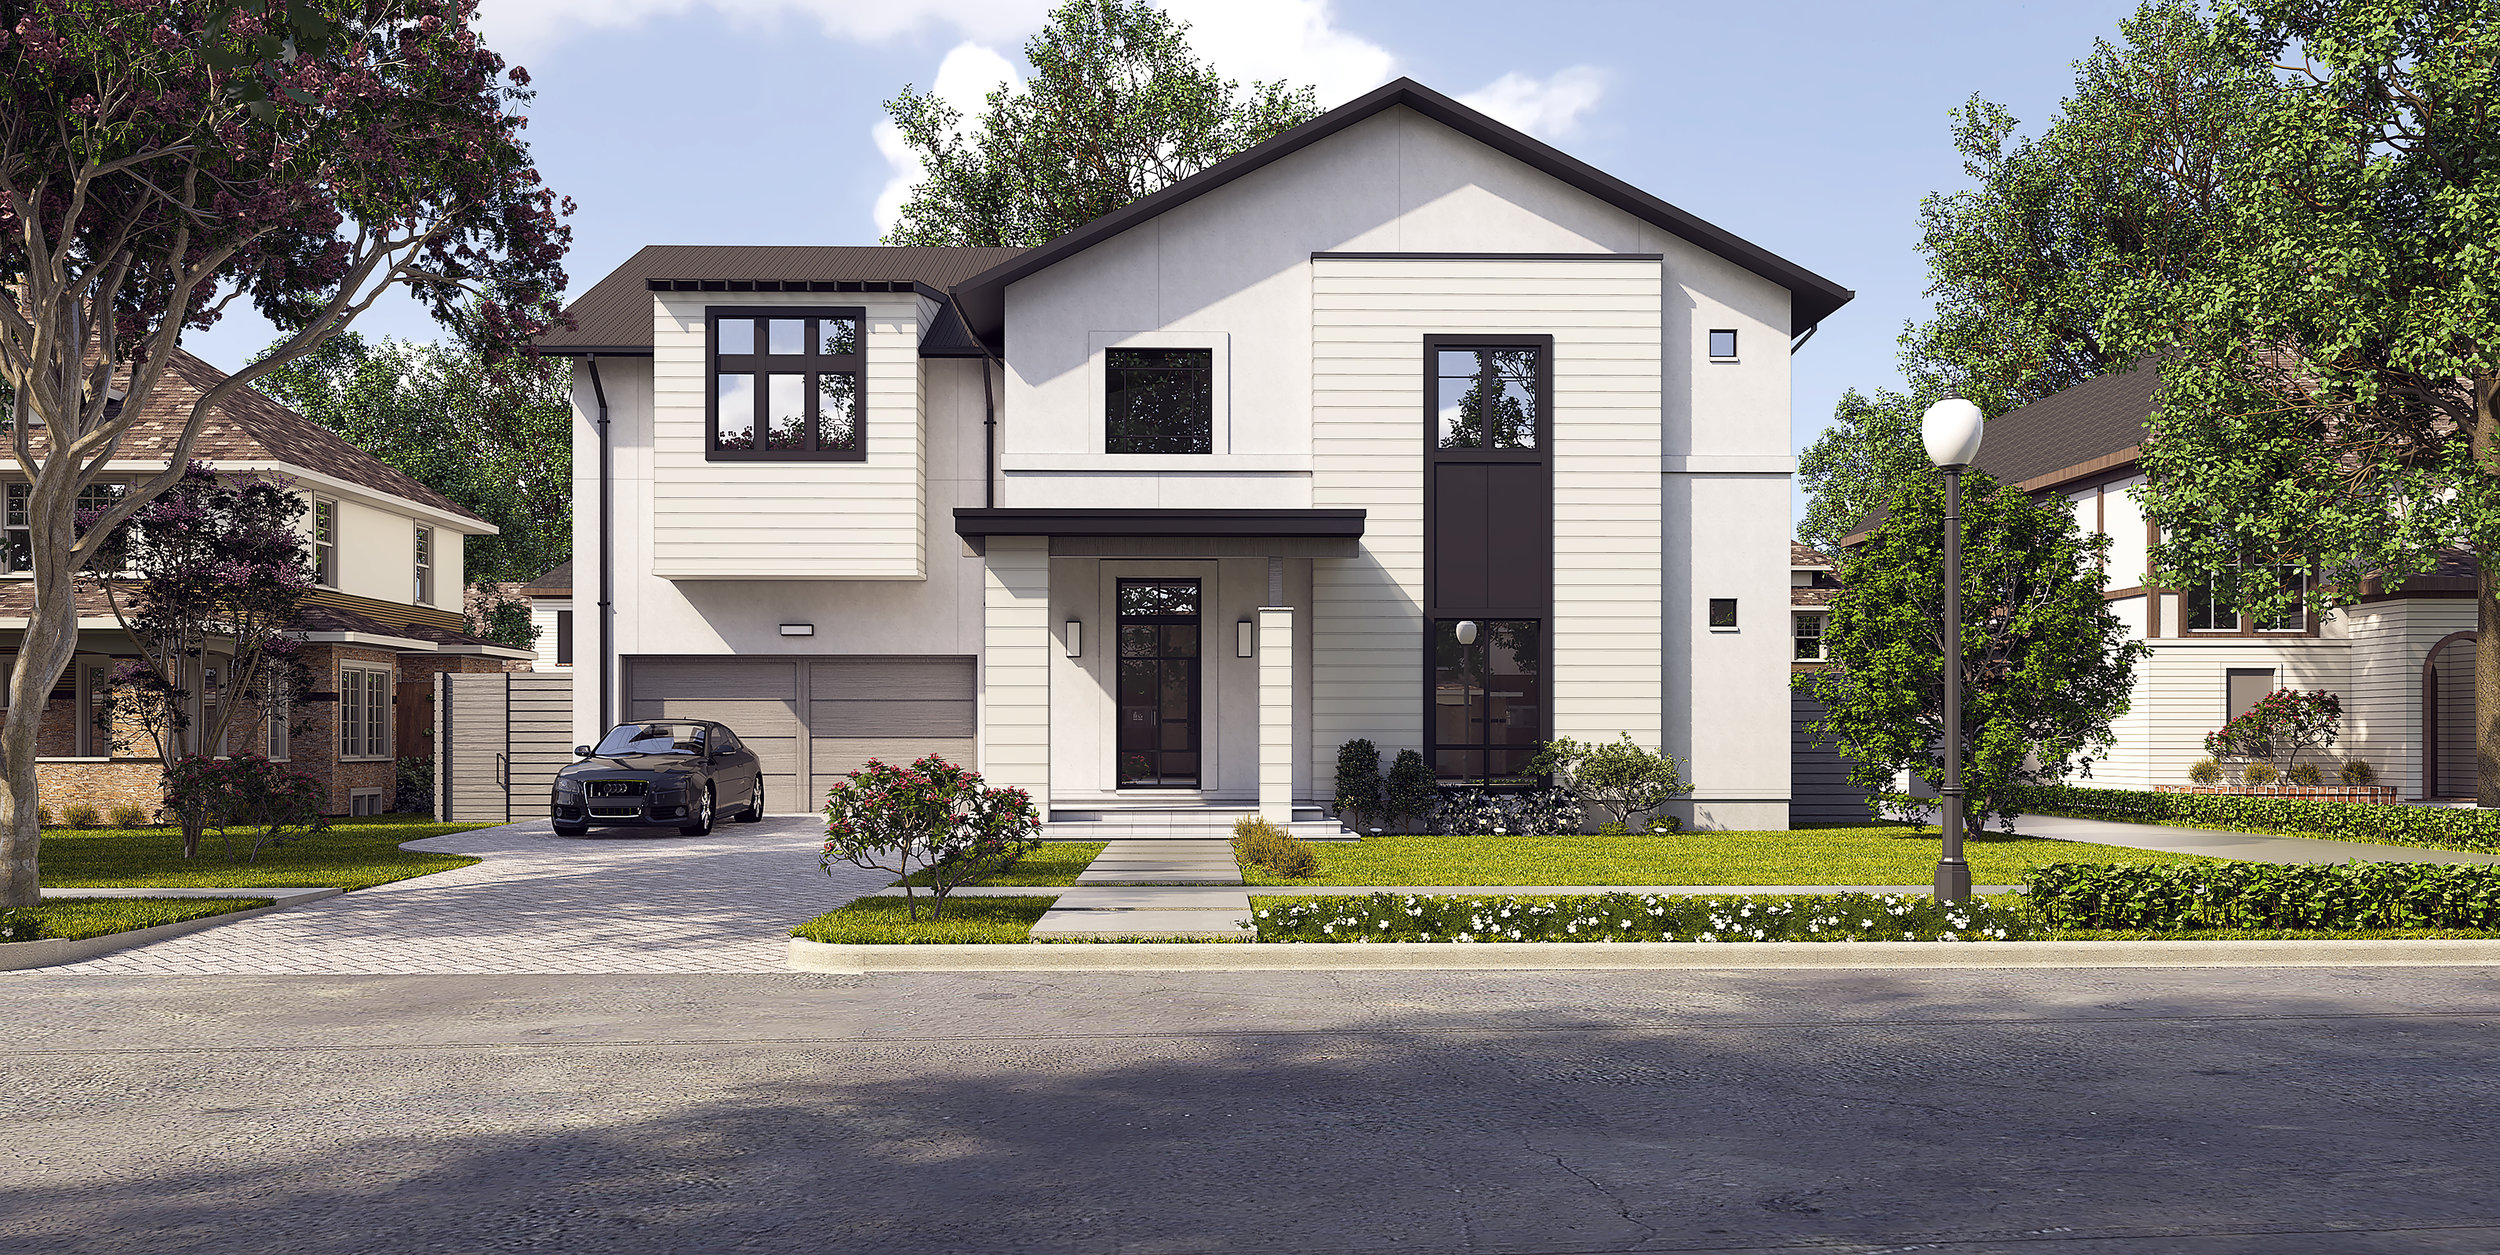 022619 GETOW Ext rendering SMALL .jpg